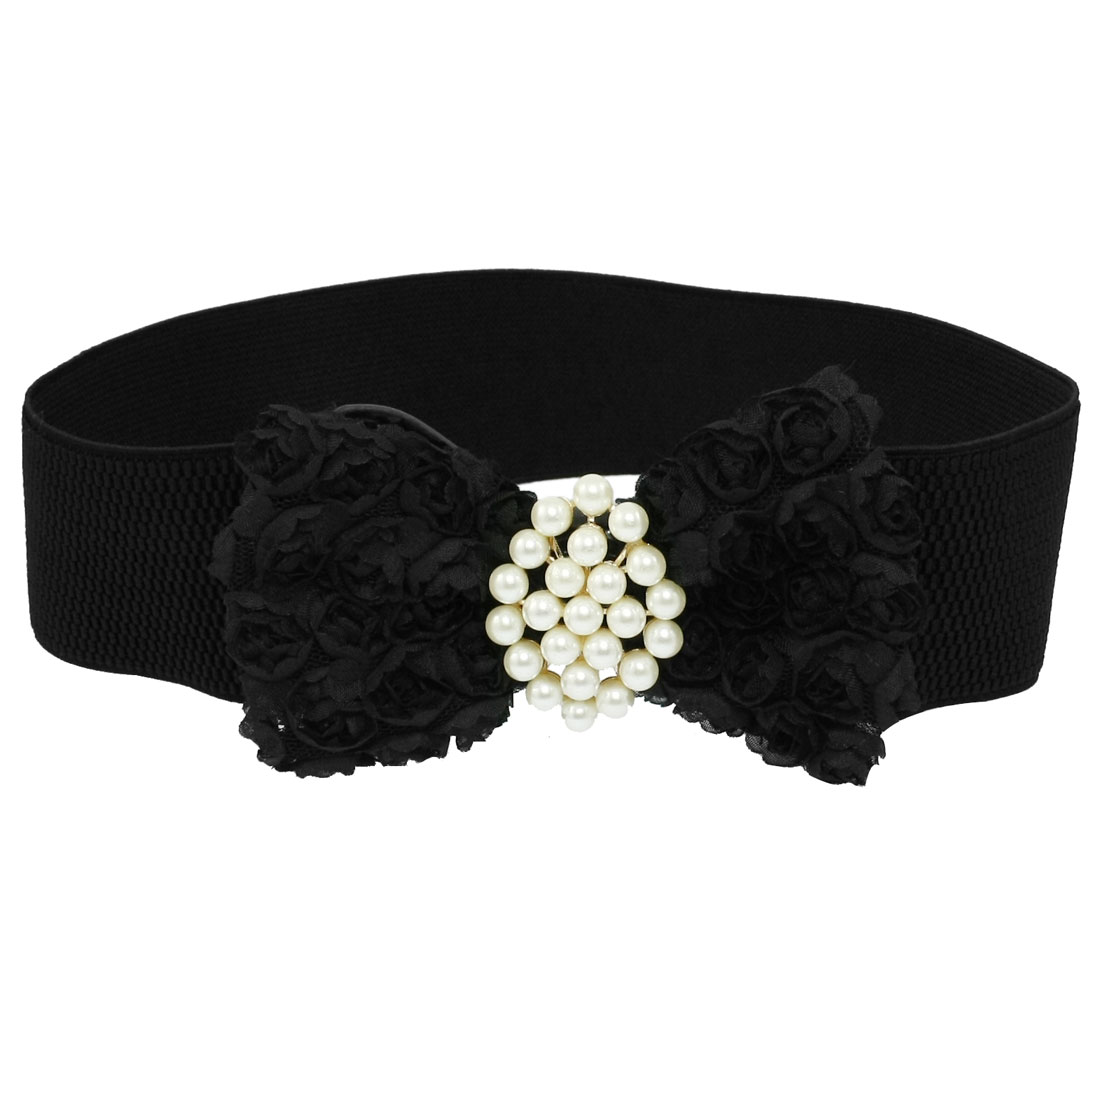 Woman Flower Bowknot White Beads Decor Black Elastic Cinch Belt